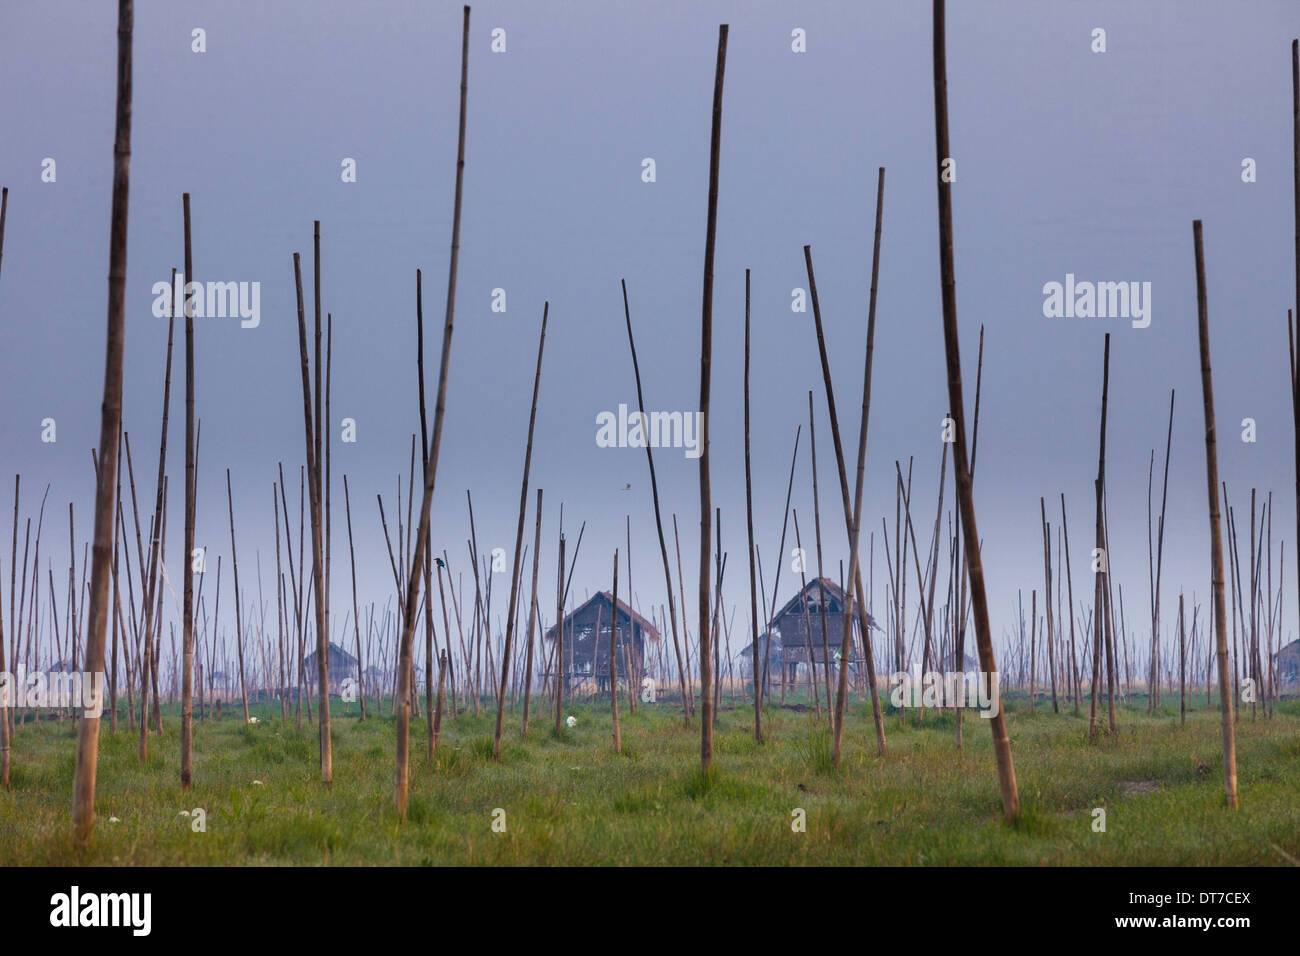 The marshes of Inle Lake Myanmar Small houses on stilts and tall poles upright in the marsh landscape Inle Lake Myanmar - Stock Image